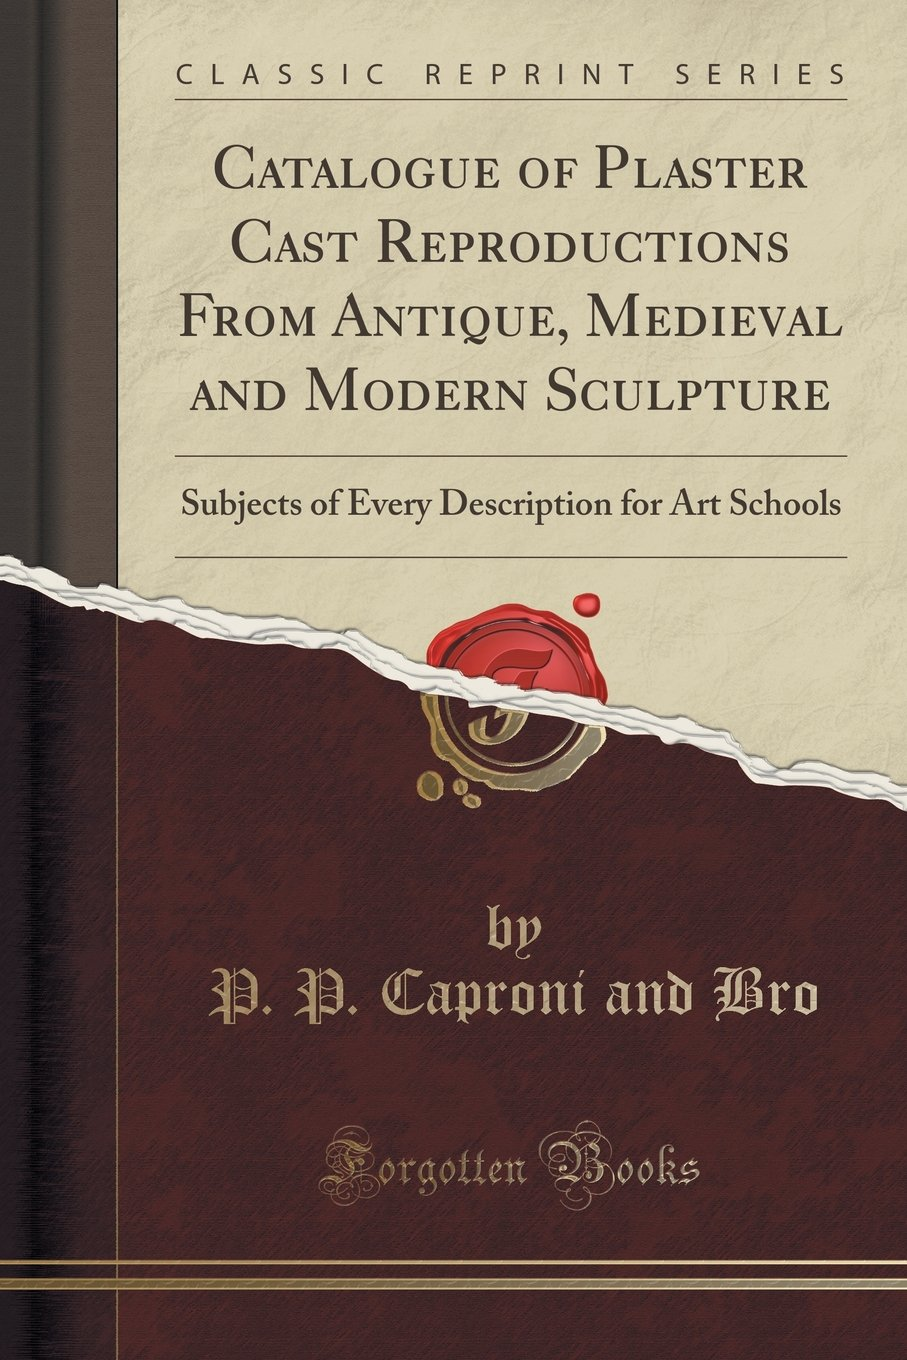 Catalogue of Plaster Cast Reproductions From Antique, Medieval and Modern Sculpture: Subjects of Every Description for Art Schools (Classic Reprint)